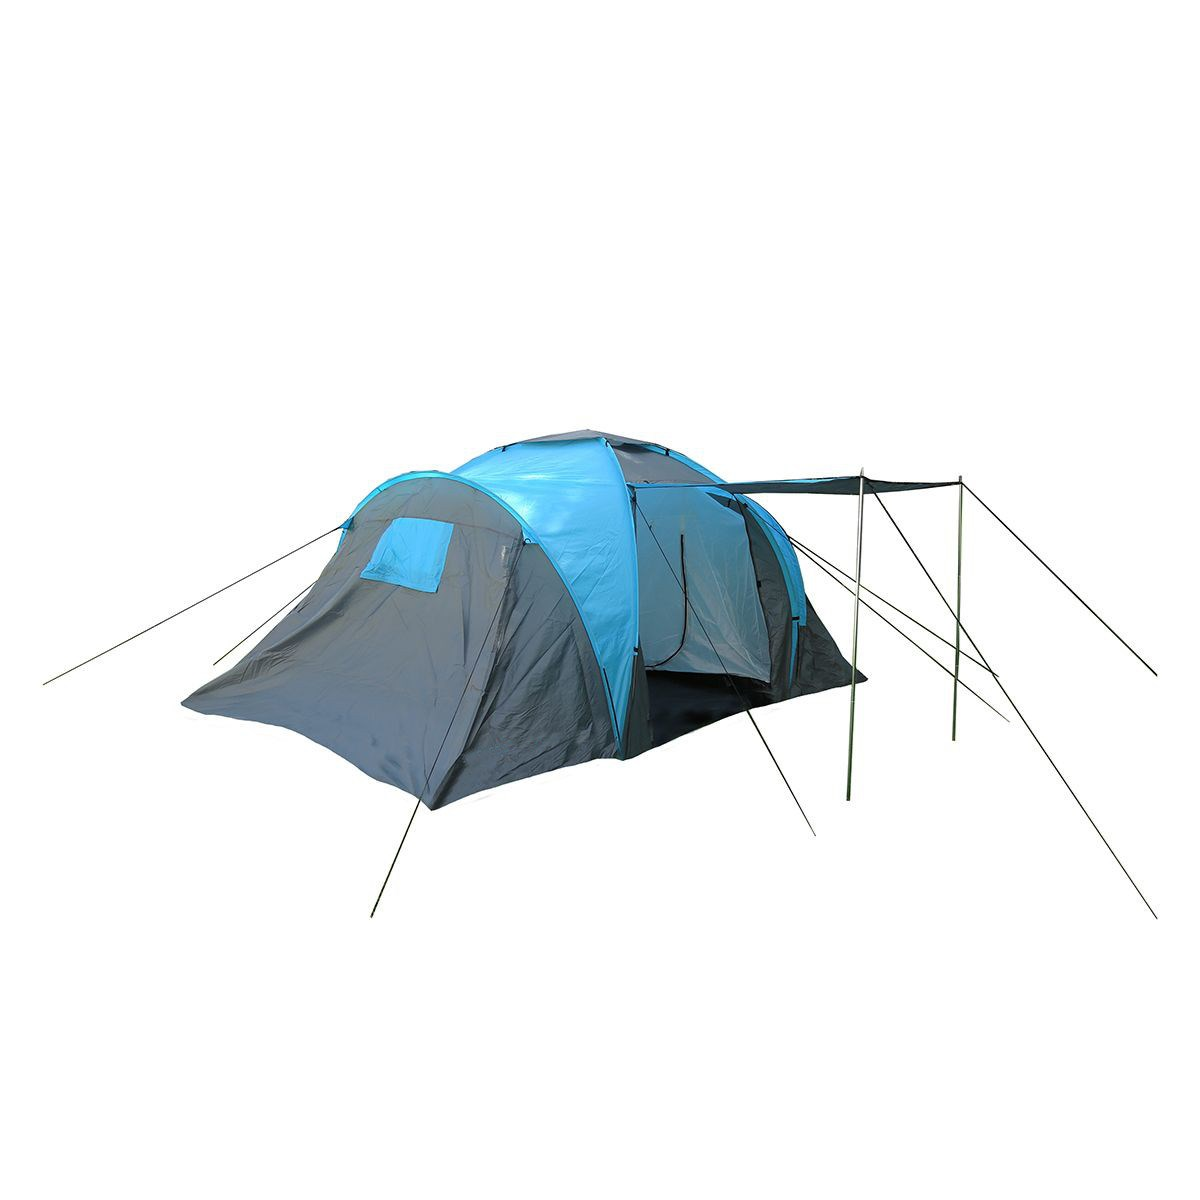 4 Berth Tent with Awning